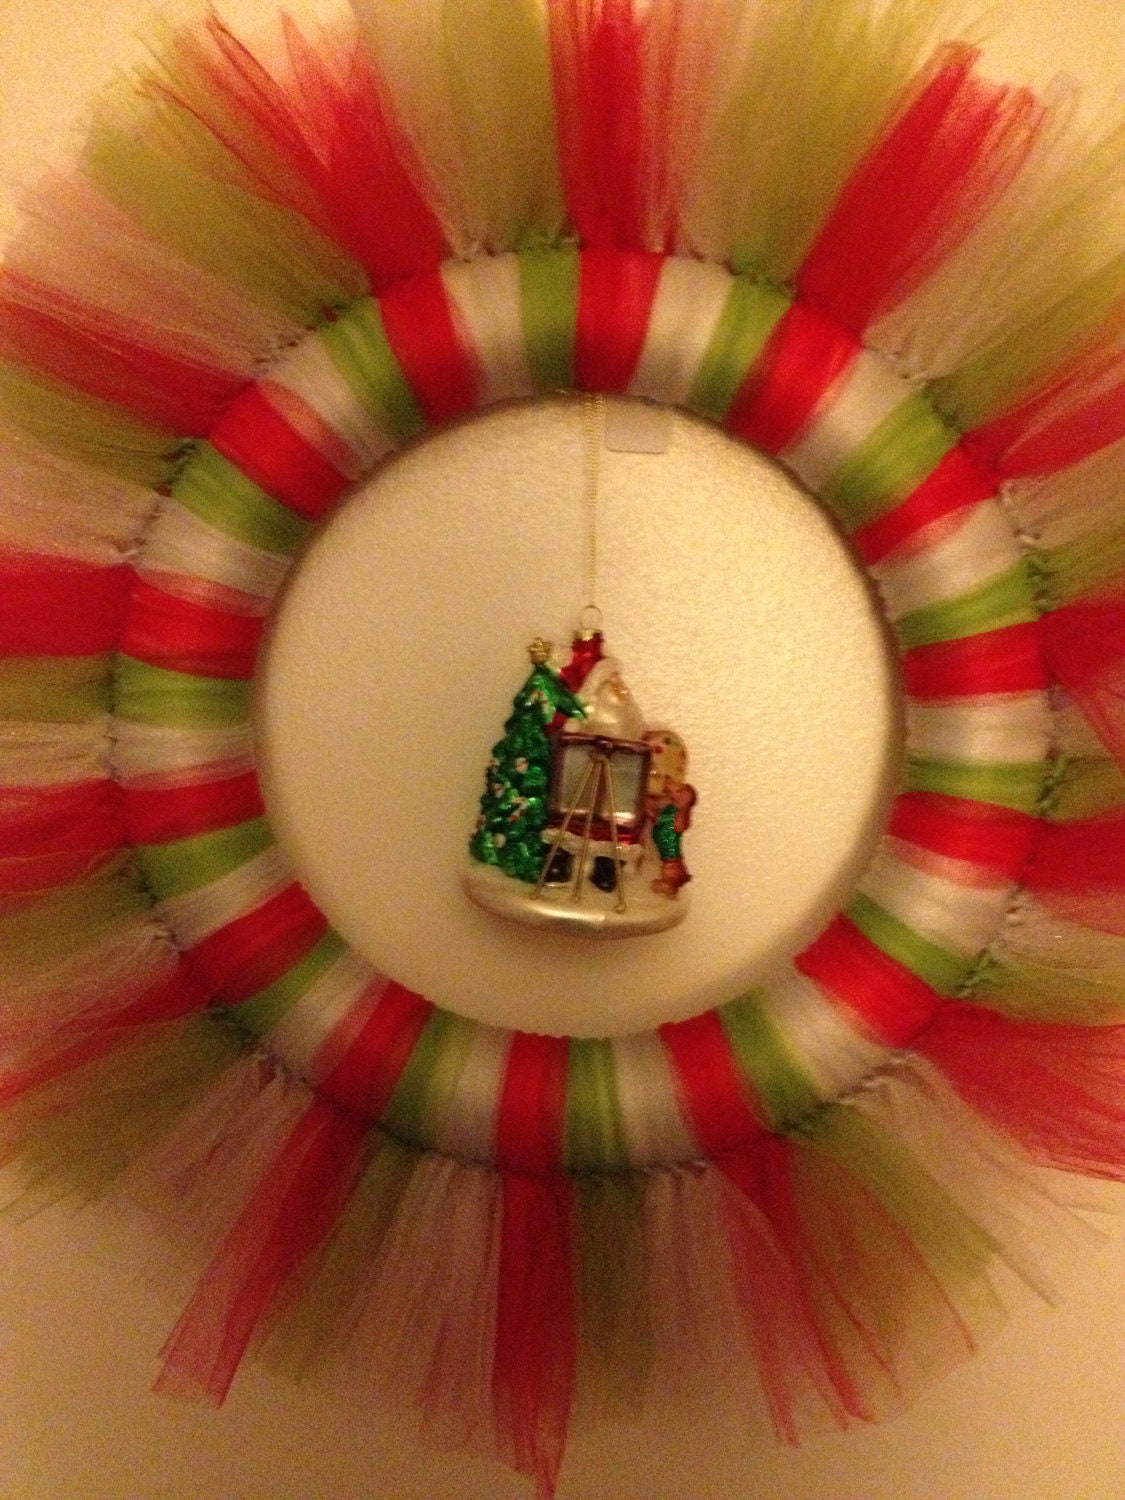 Silver, Red, and Green Christmas tulle wreath with glass Santa ornament